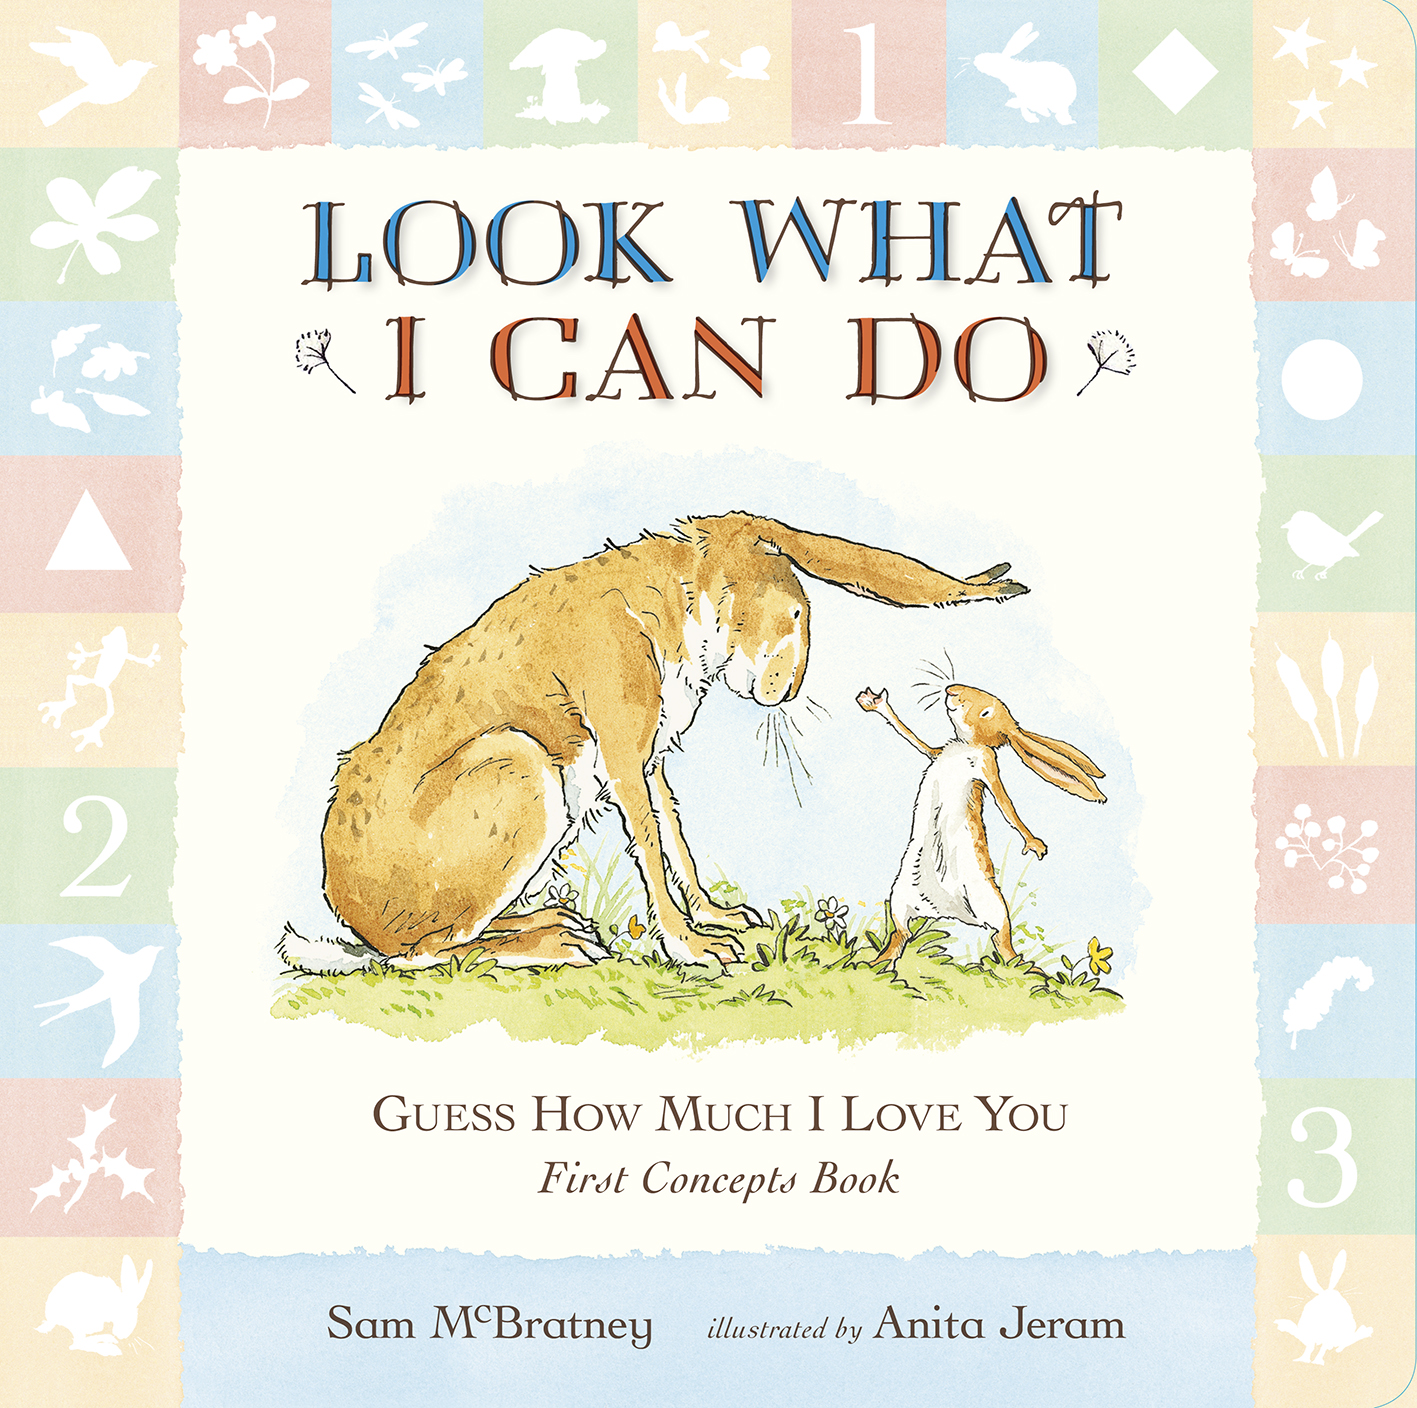 Guess how much i love you look what i can do first concepts book